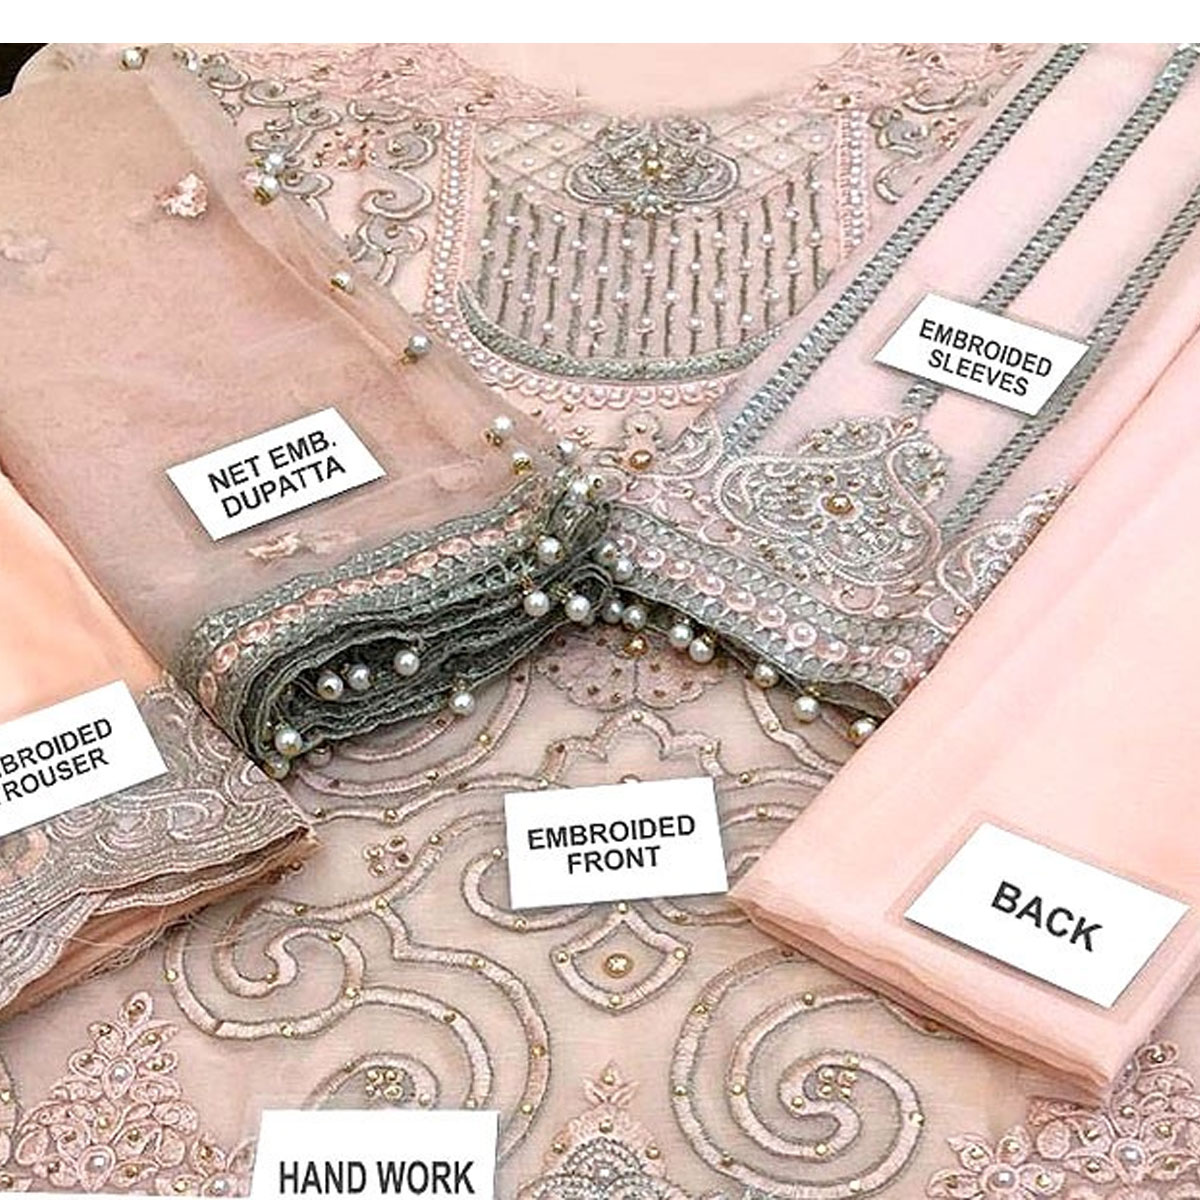 Heavy Handwork Embroidered Chiffon Dress with Net Dupatta Unstitched 3 Piece Suit (CHI-339) Gallery Image 2